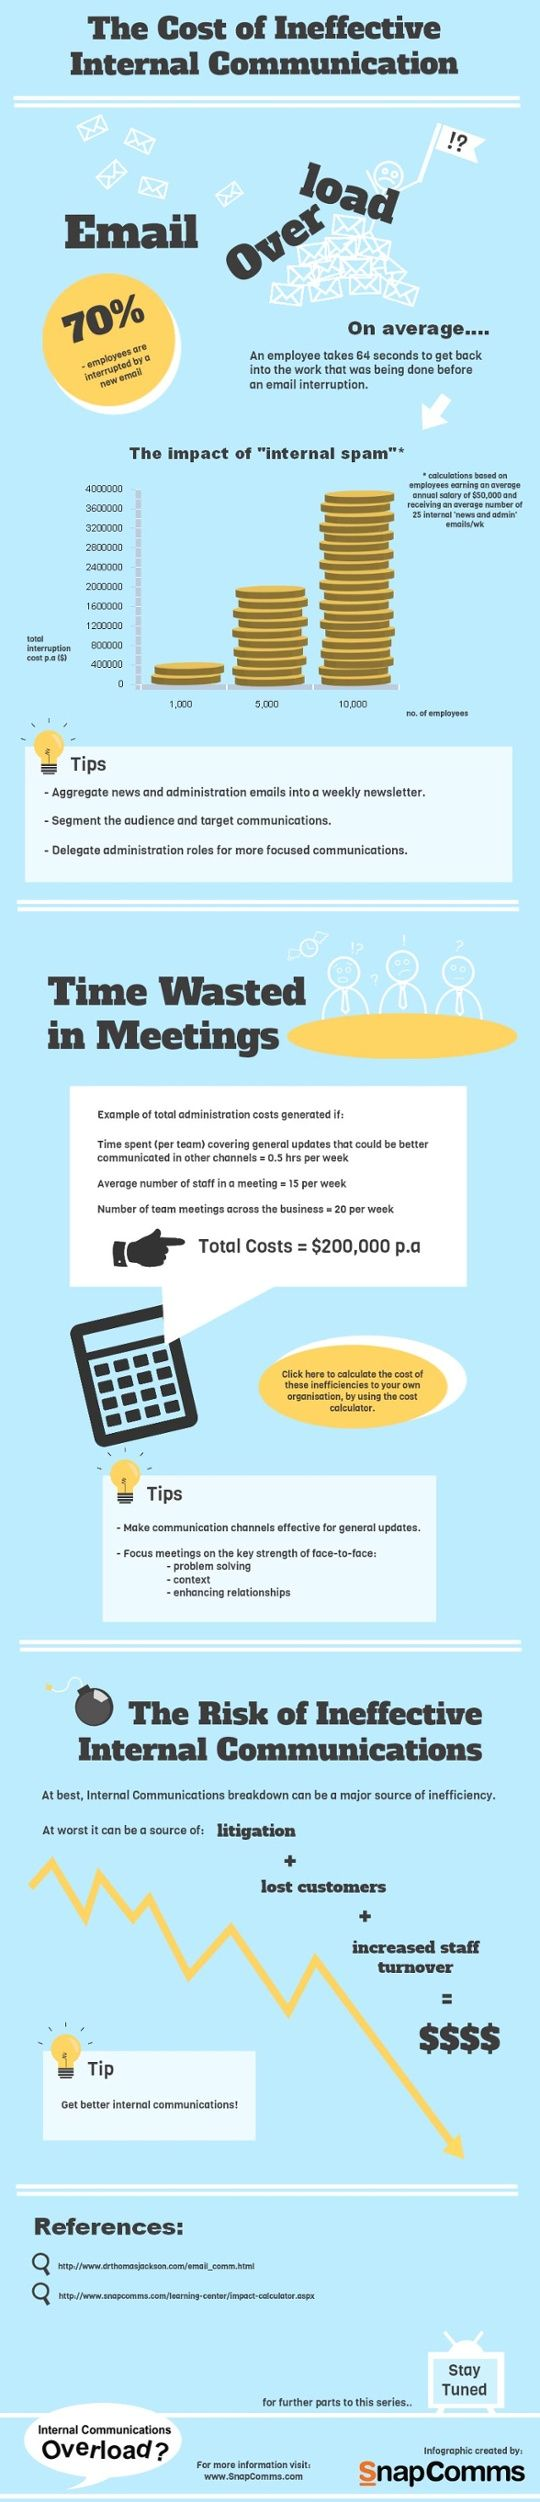 The cost of ineffective internal communication [infographic] by SnapComms